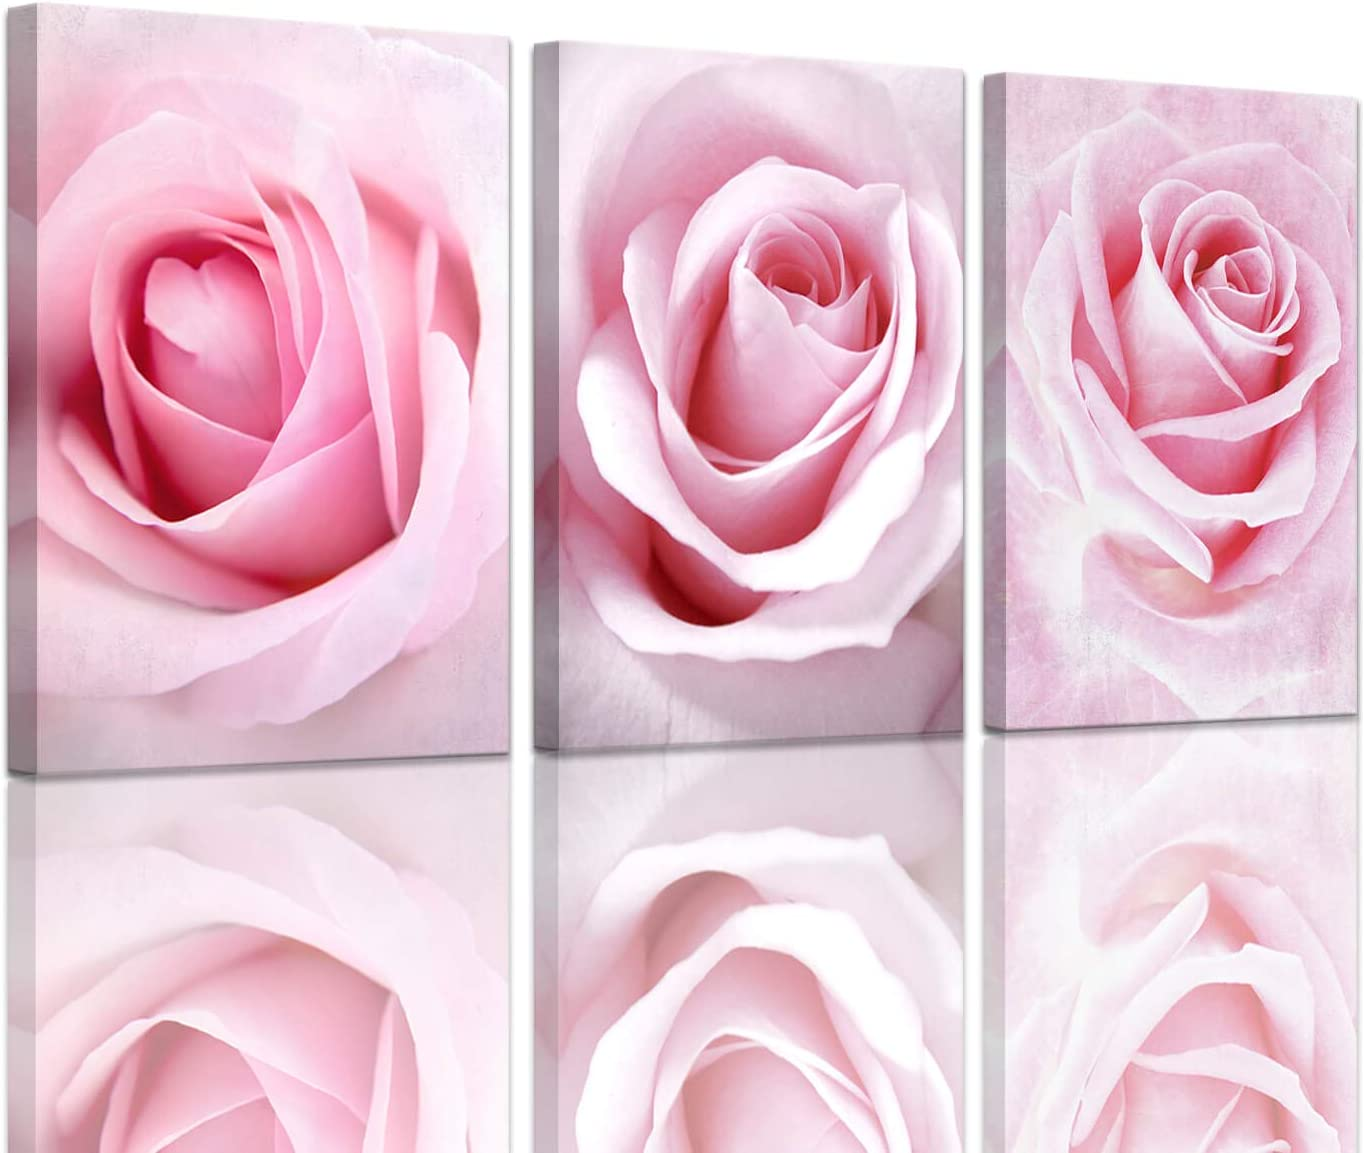 Girls Bedroom Decor Light Pink Rose Wall Art Room Decorations Flower Canvas Art Wall Decor Teenage Girls Room Decor Gallery Wrapped Artwork for Walls Floral Wall Pictures for Bathroom 12x16inch 3pcs